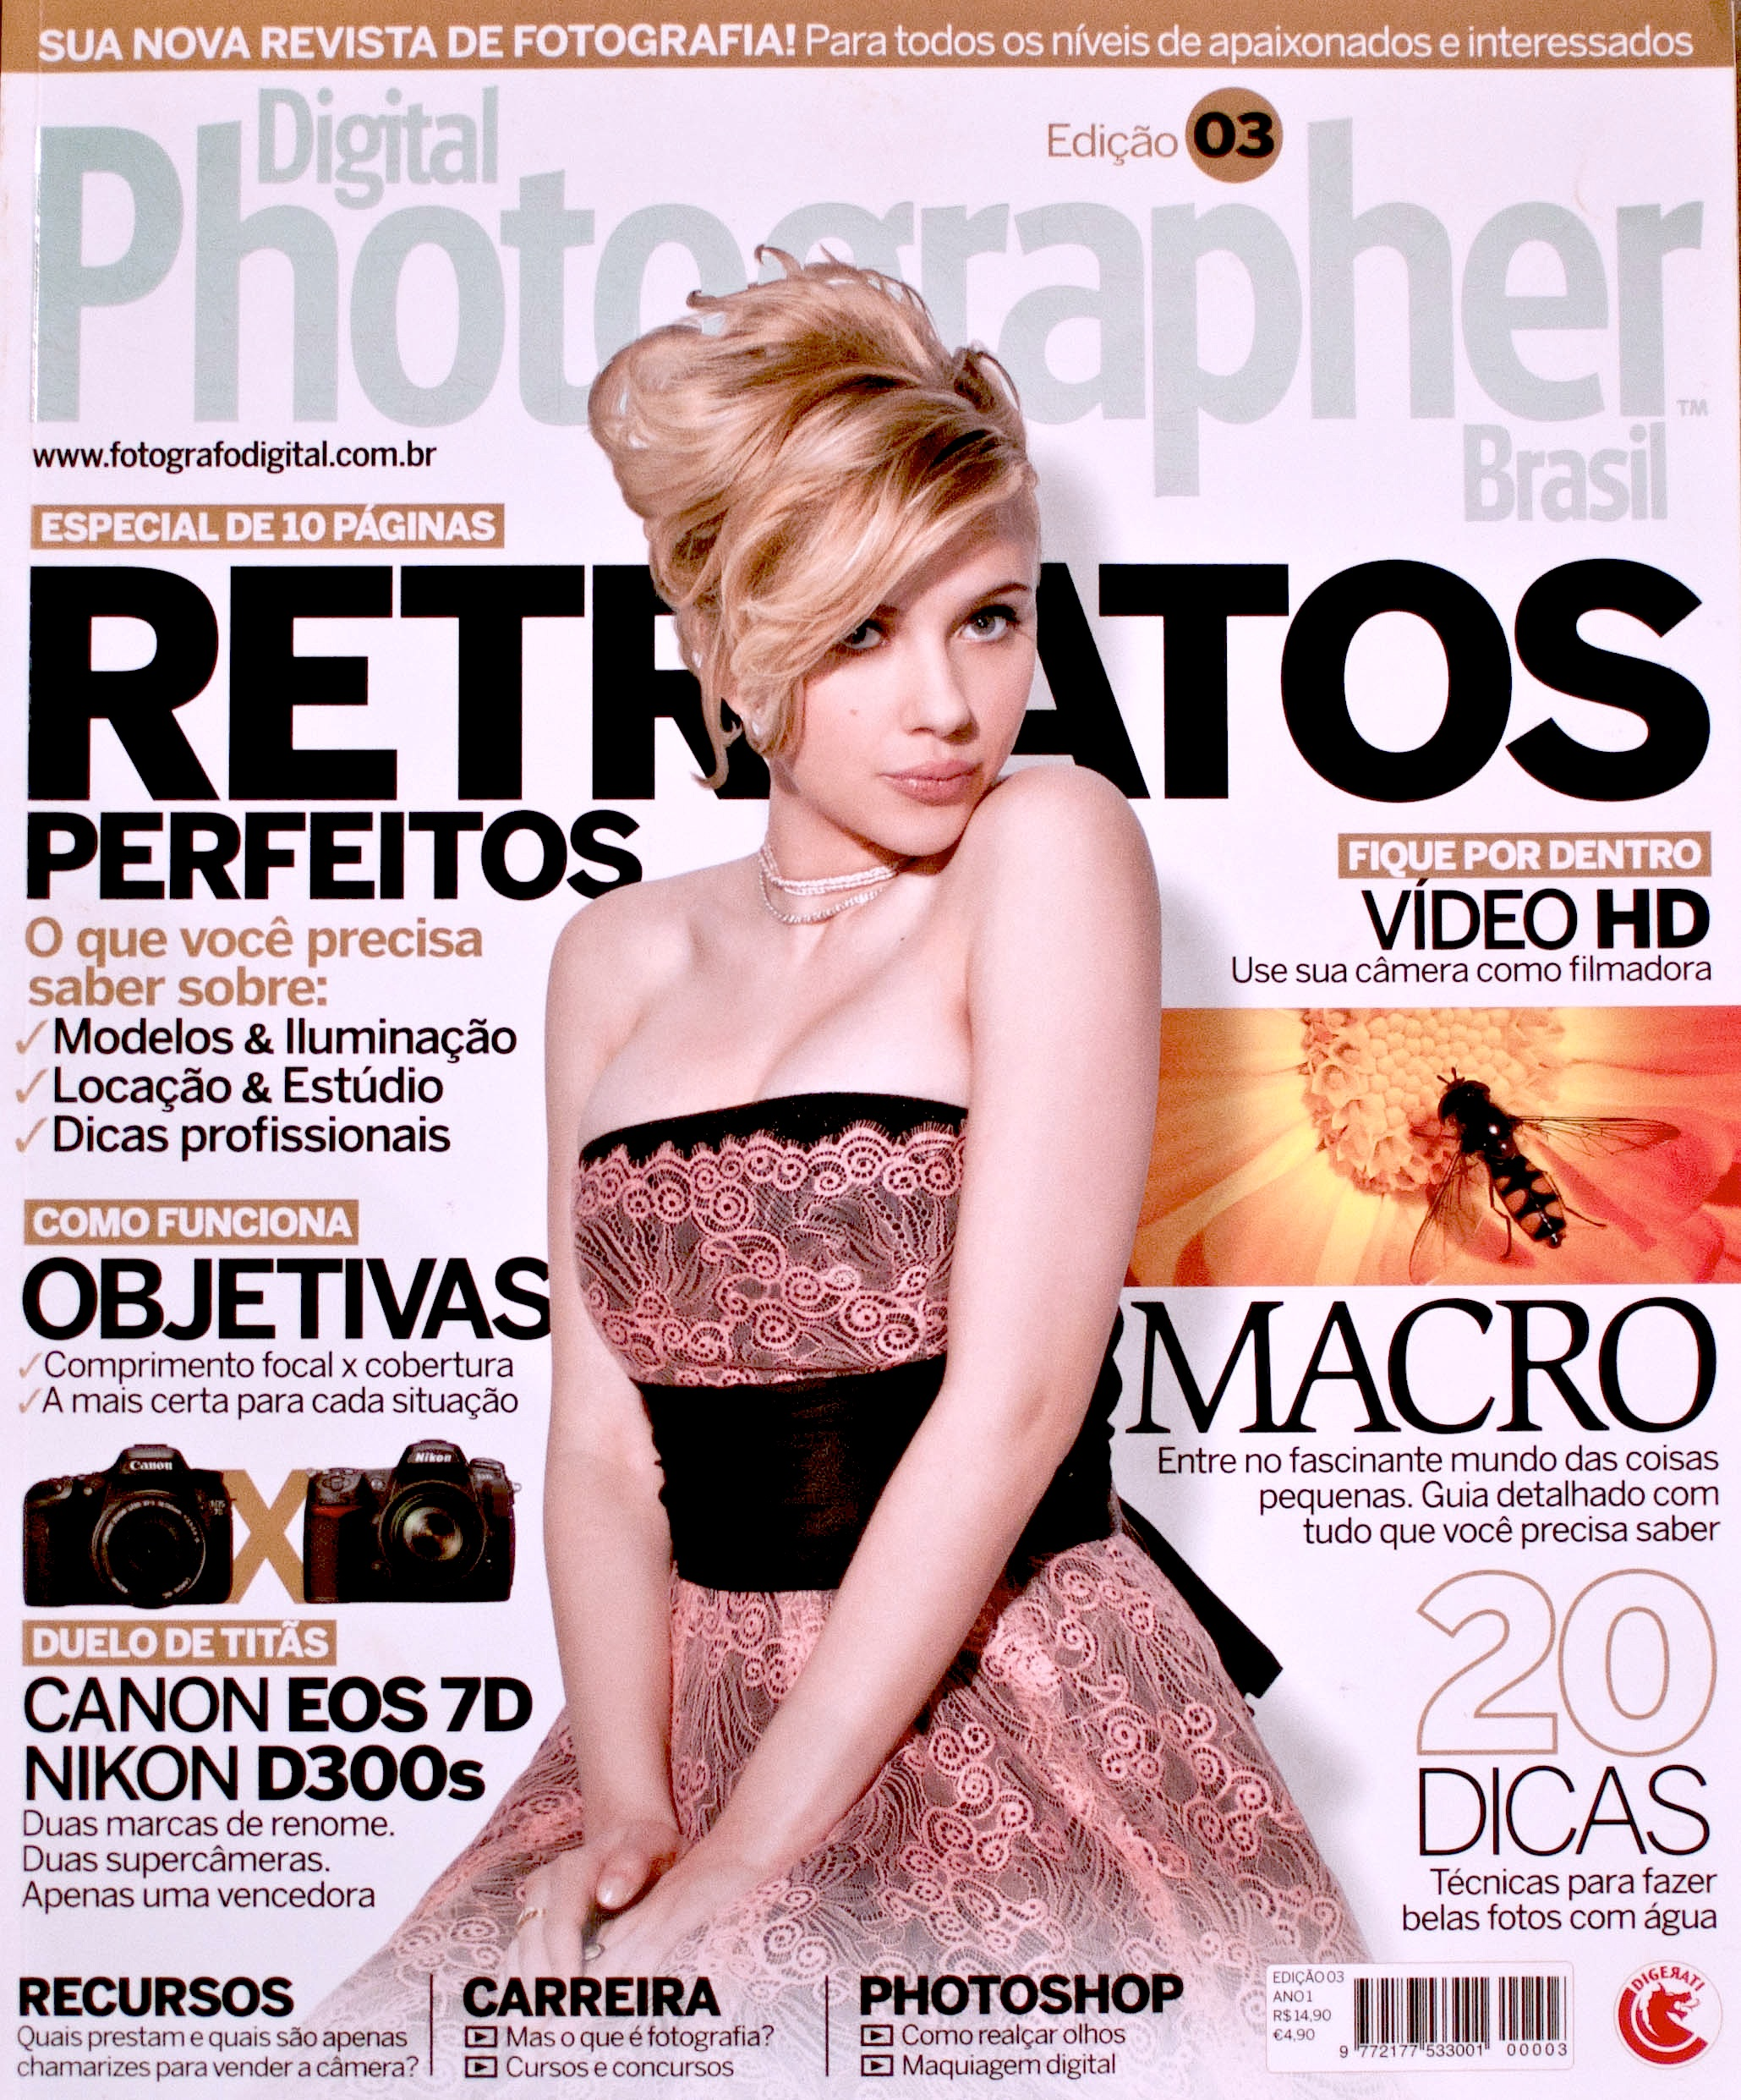 Capa Revista Digital Photographer.jpg